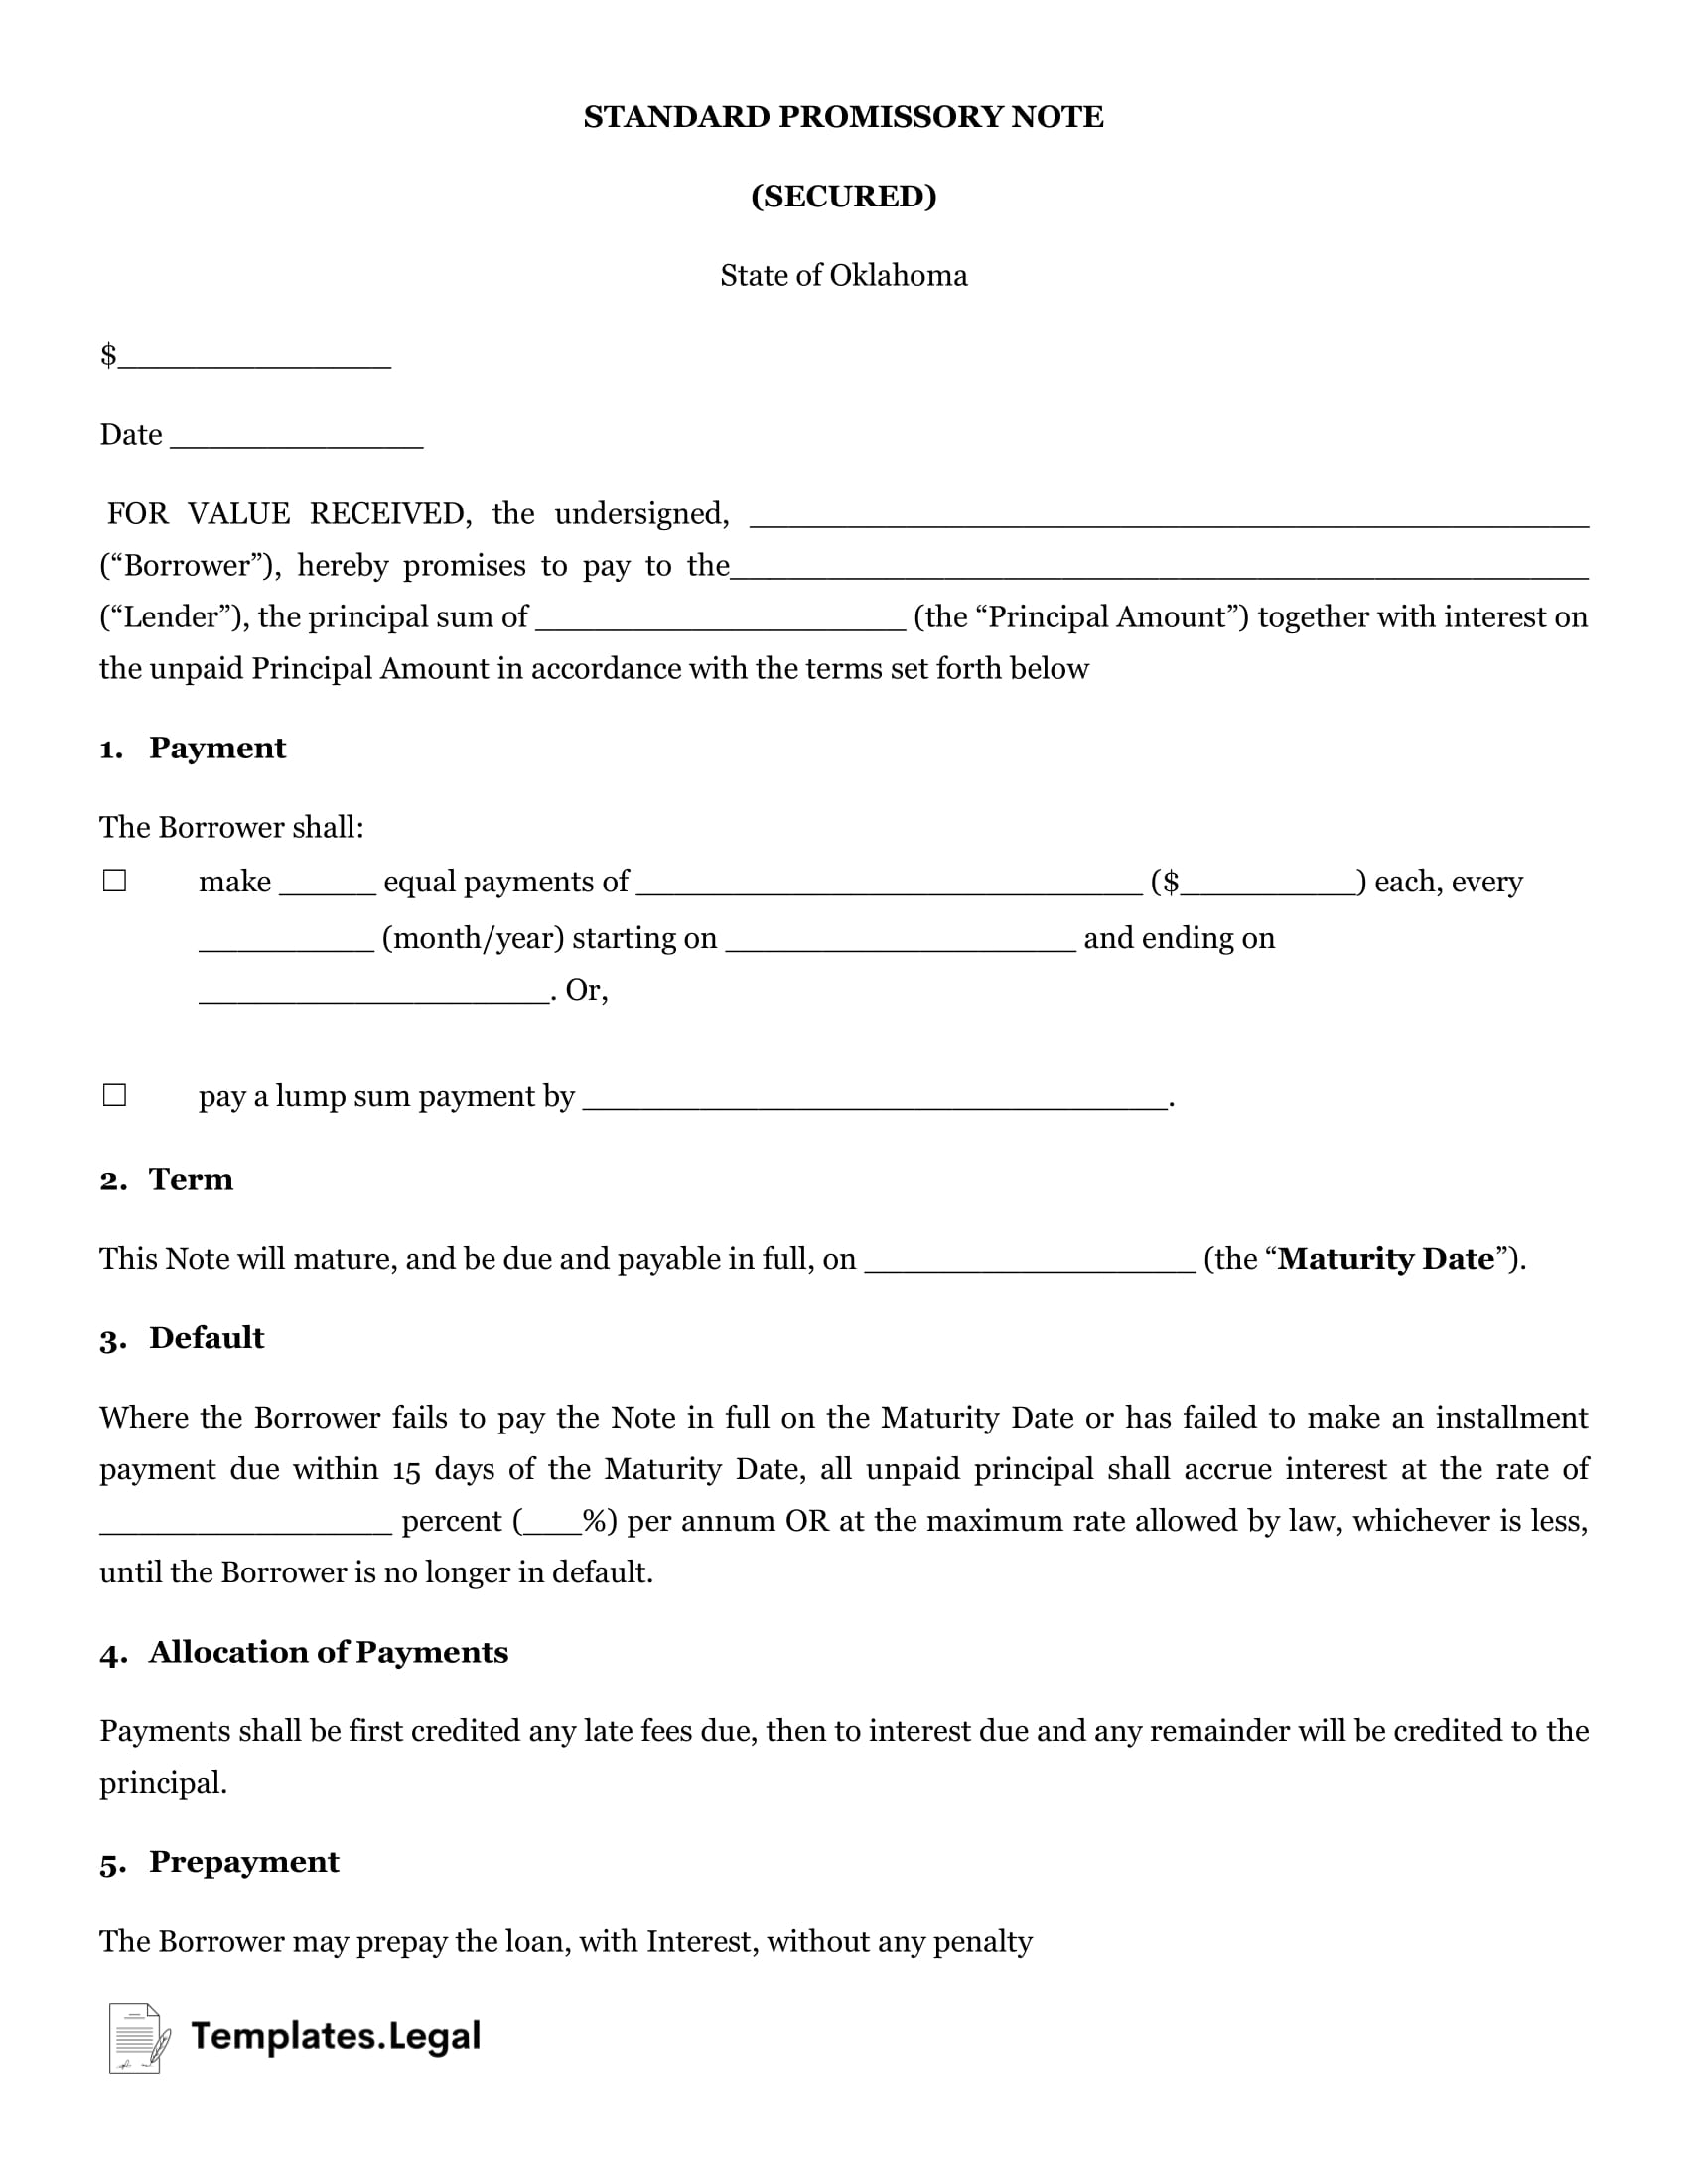 Oklahoma Secured Promissory Note - Templates.Legal